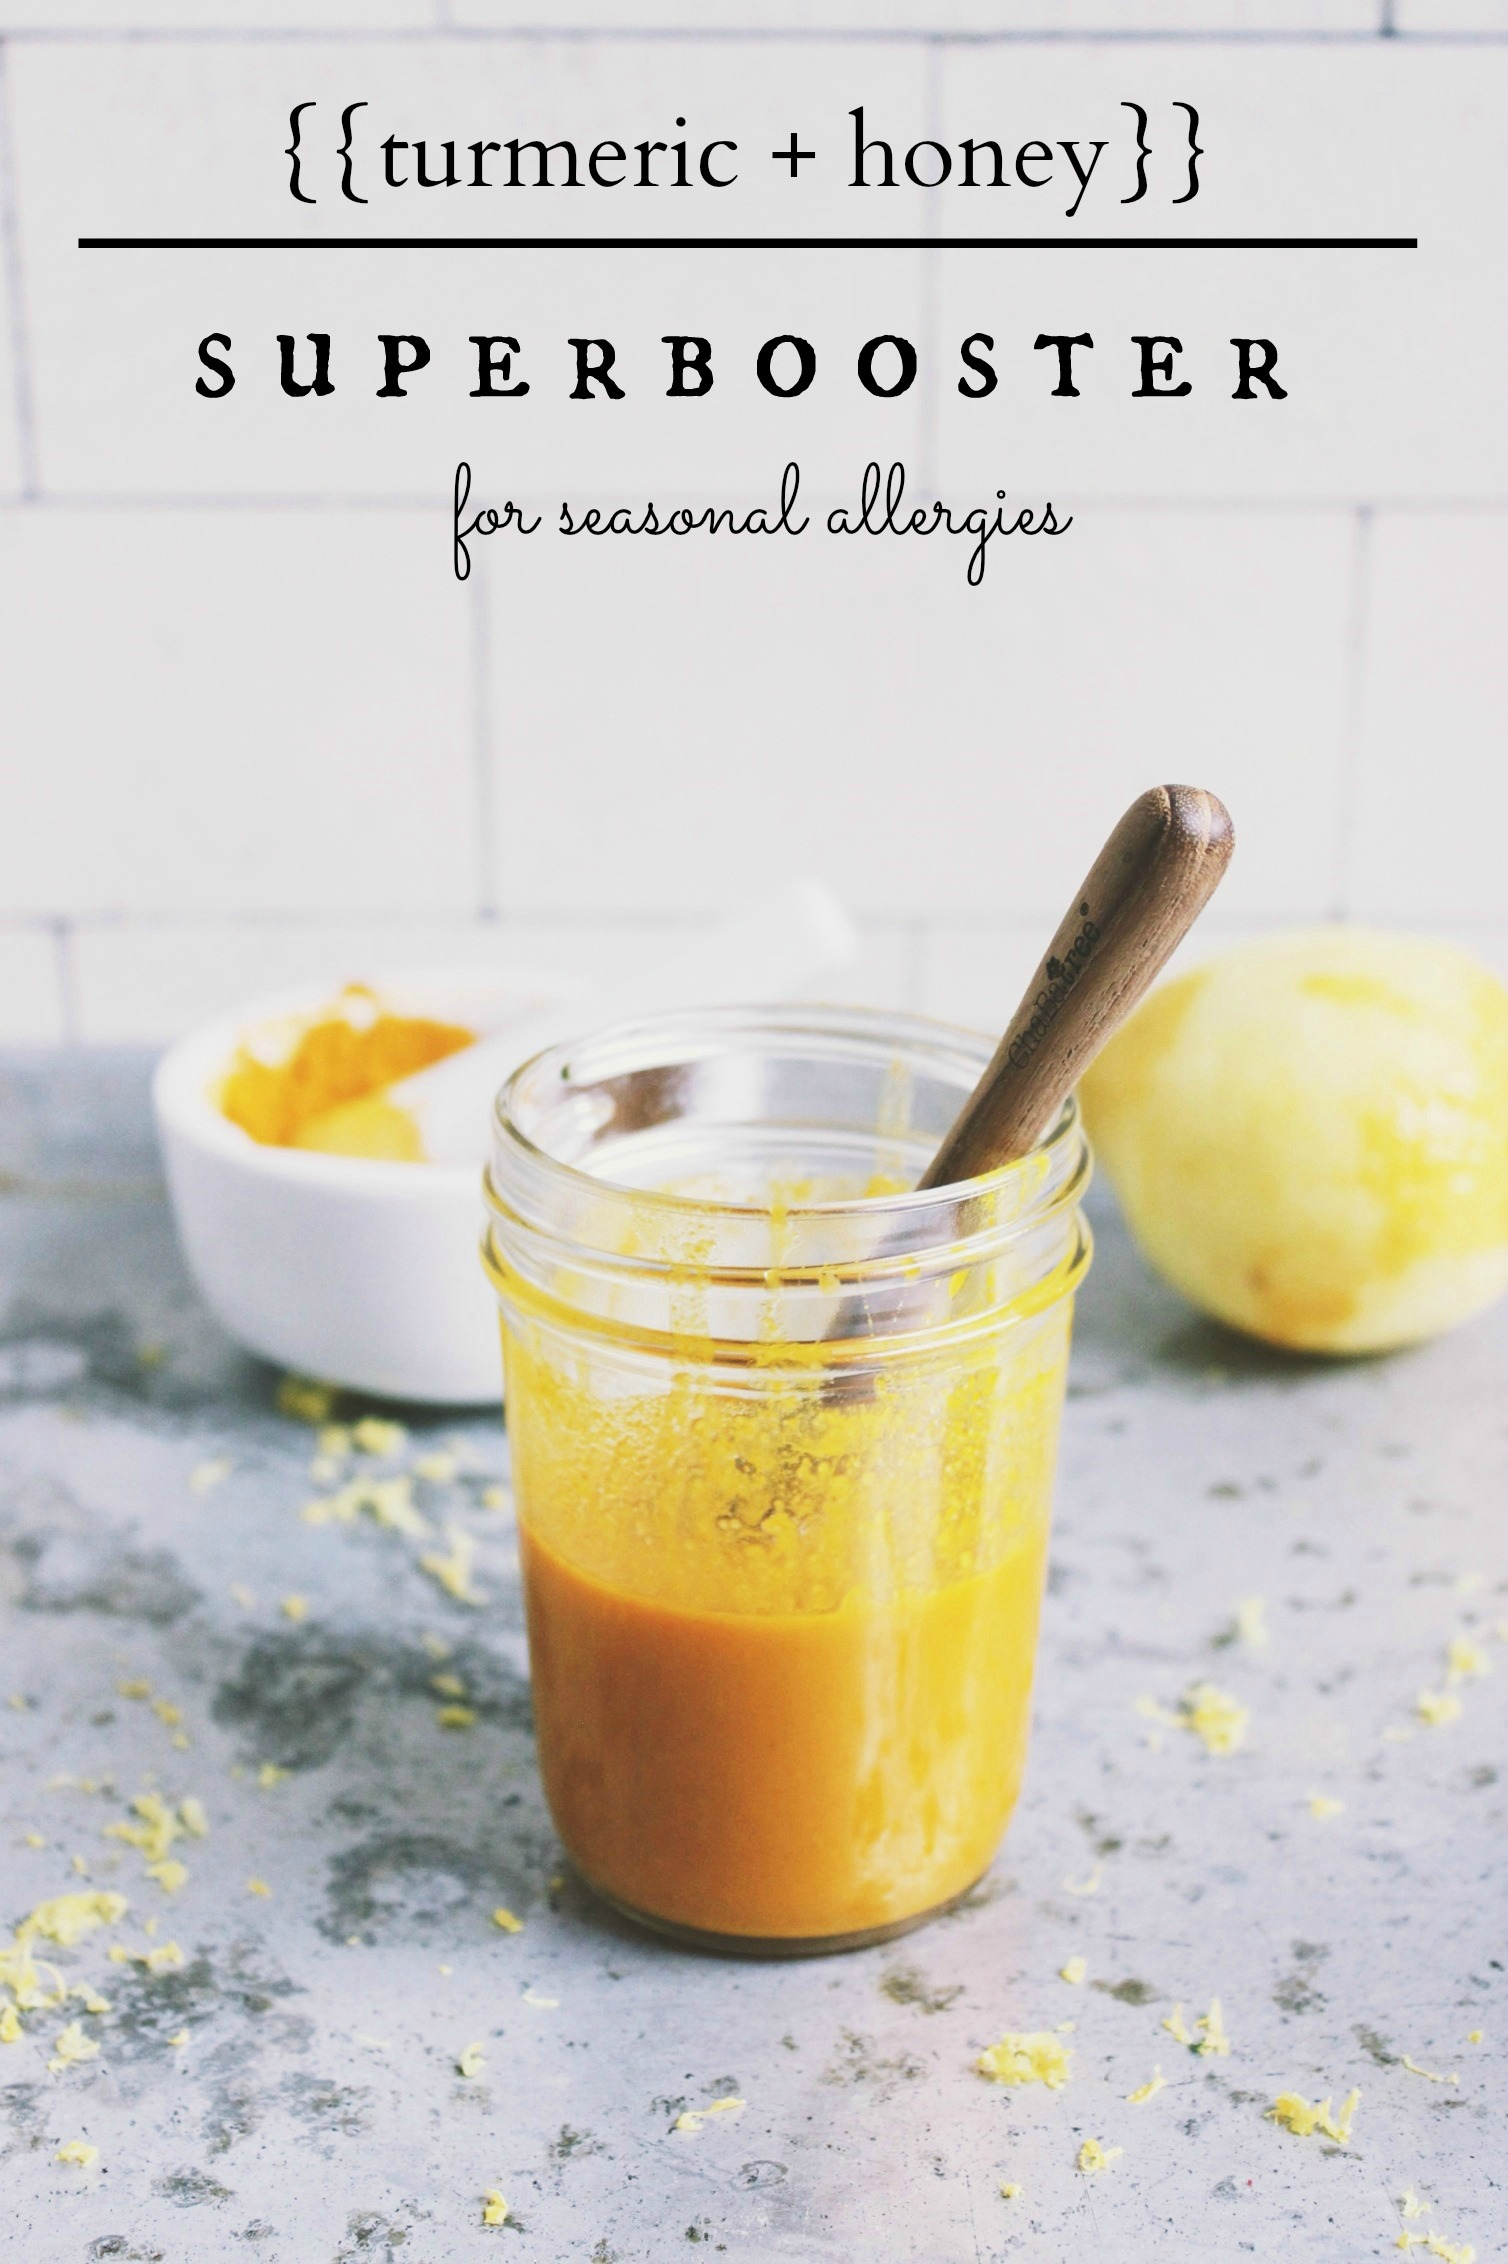 Turmeric with honey - makes it drinkable with all its goodness intact via